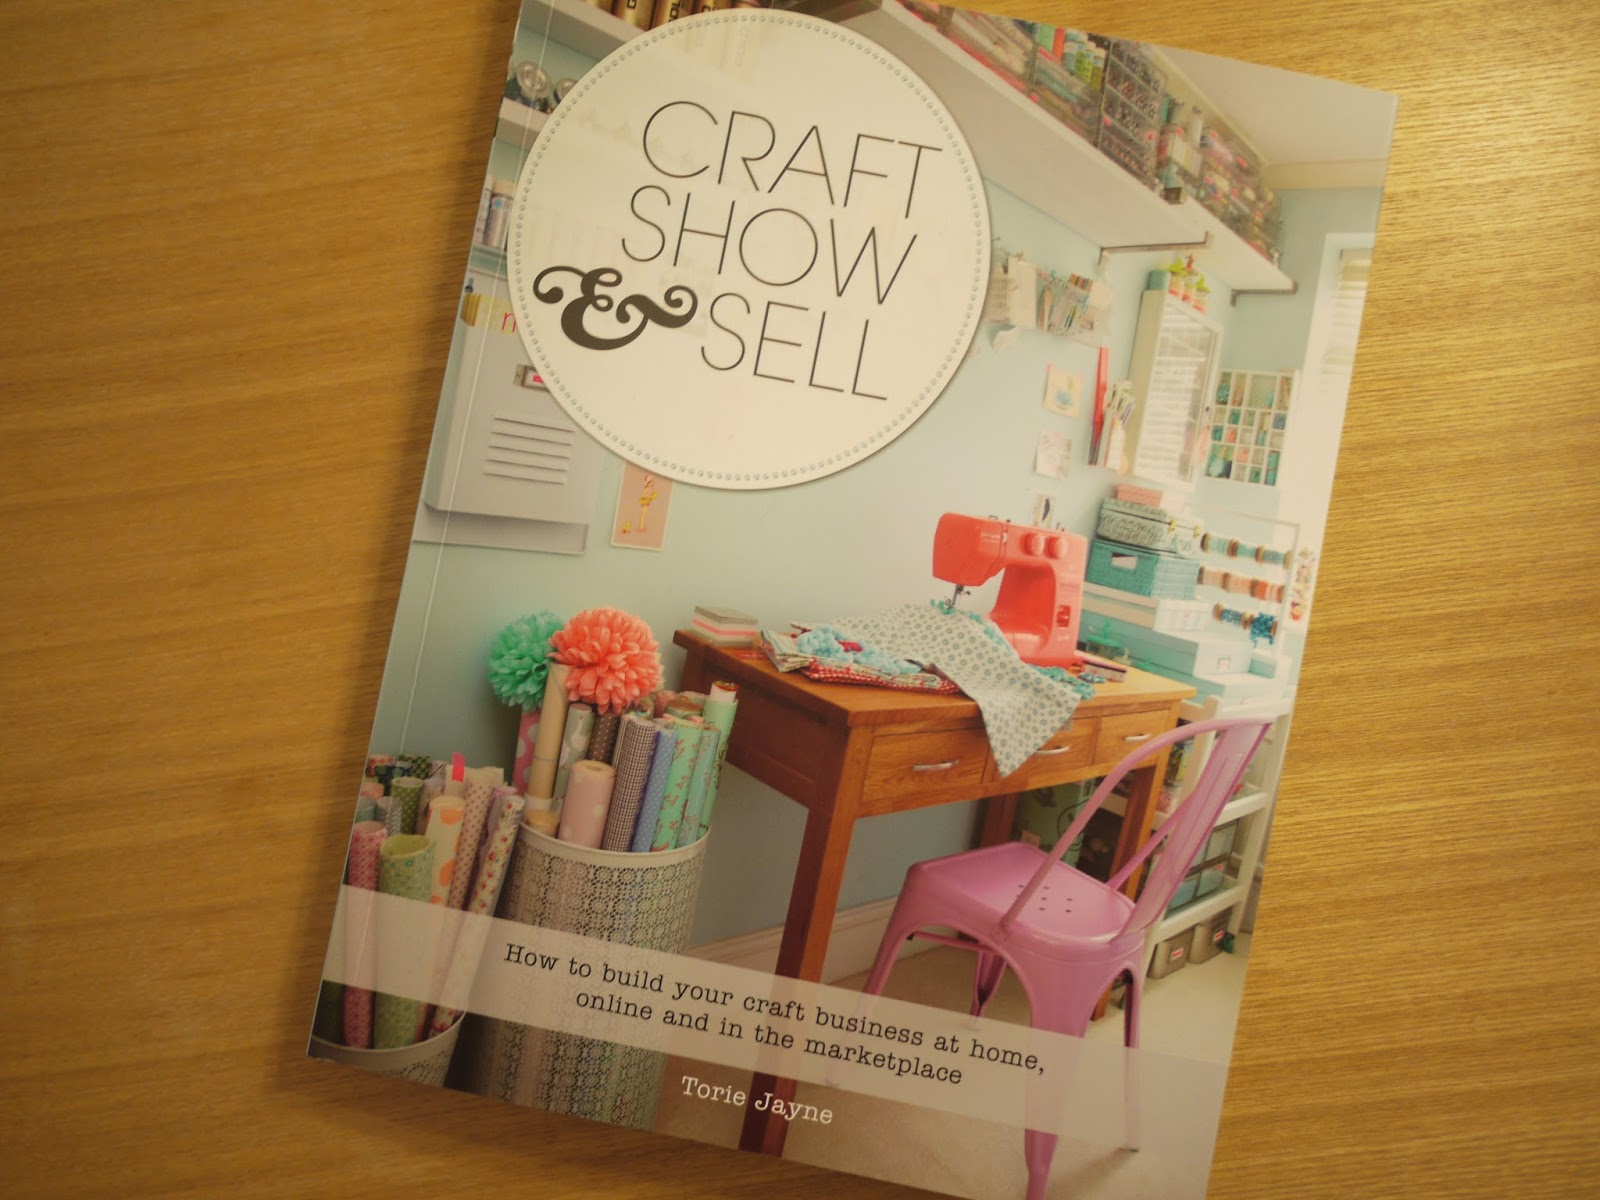 A picture of Torie Jayne's book Craft, show and sell